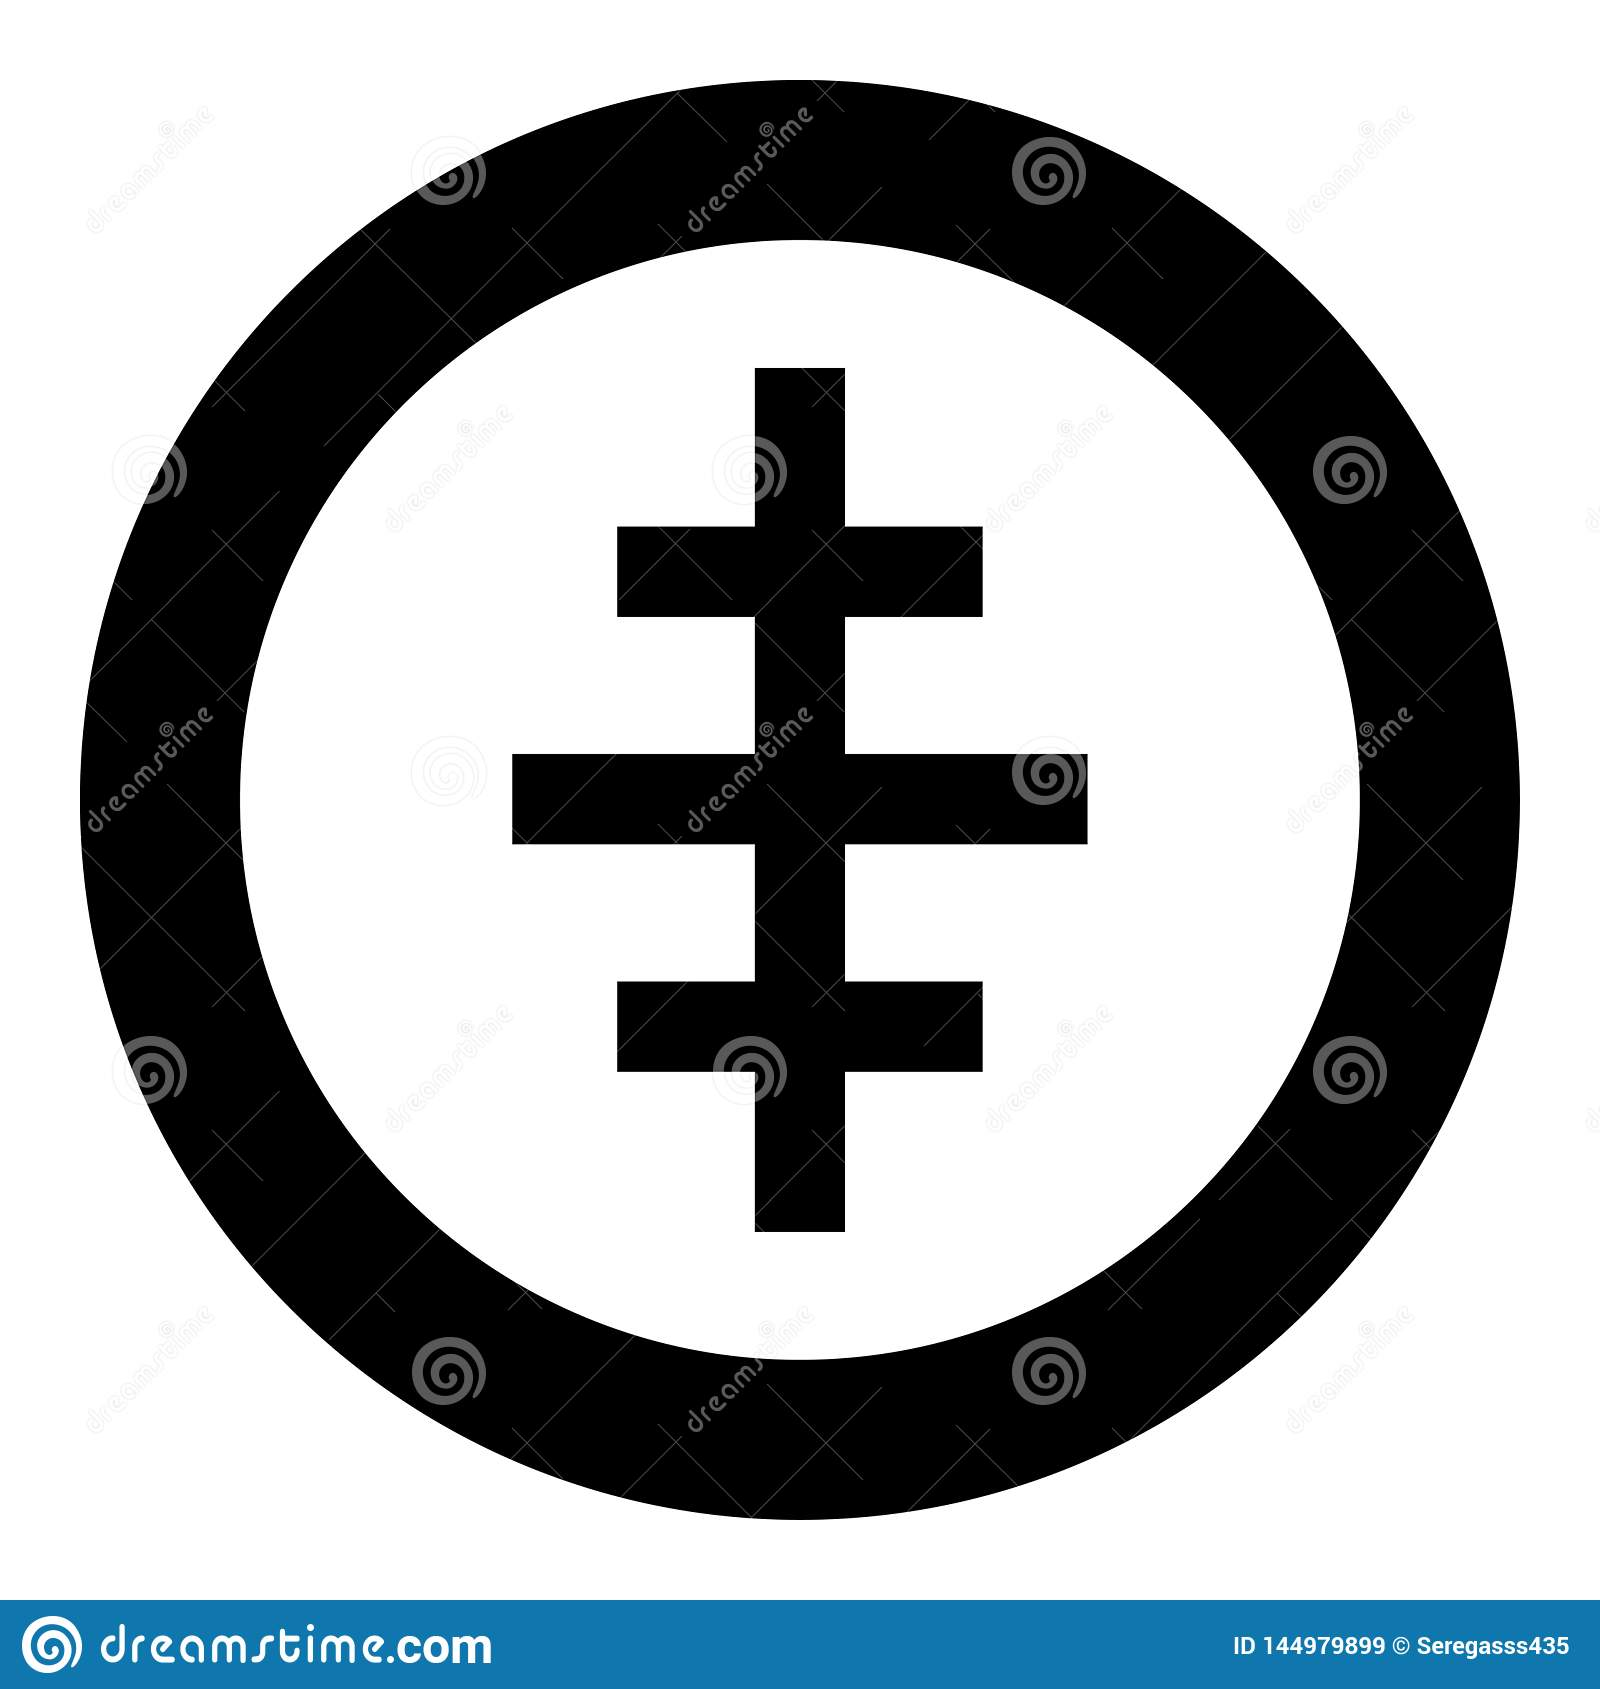 Cross papal roman church icon in circle round black color vector illustration flat style image